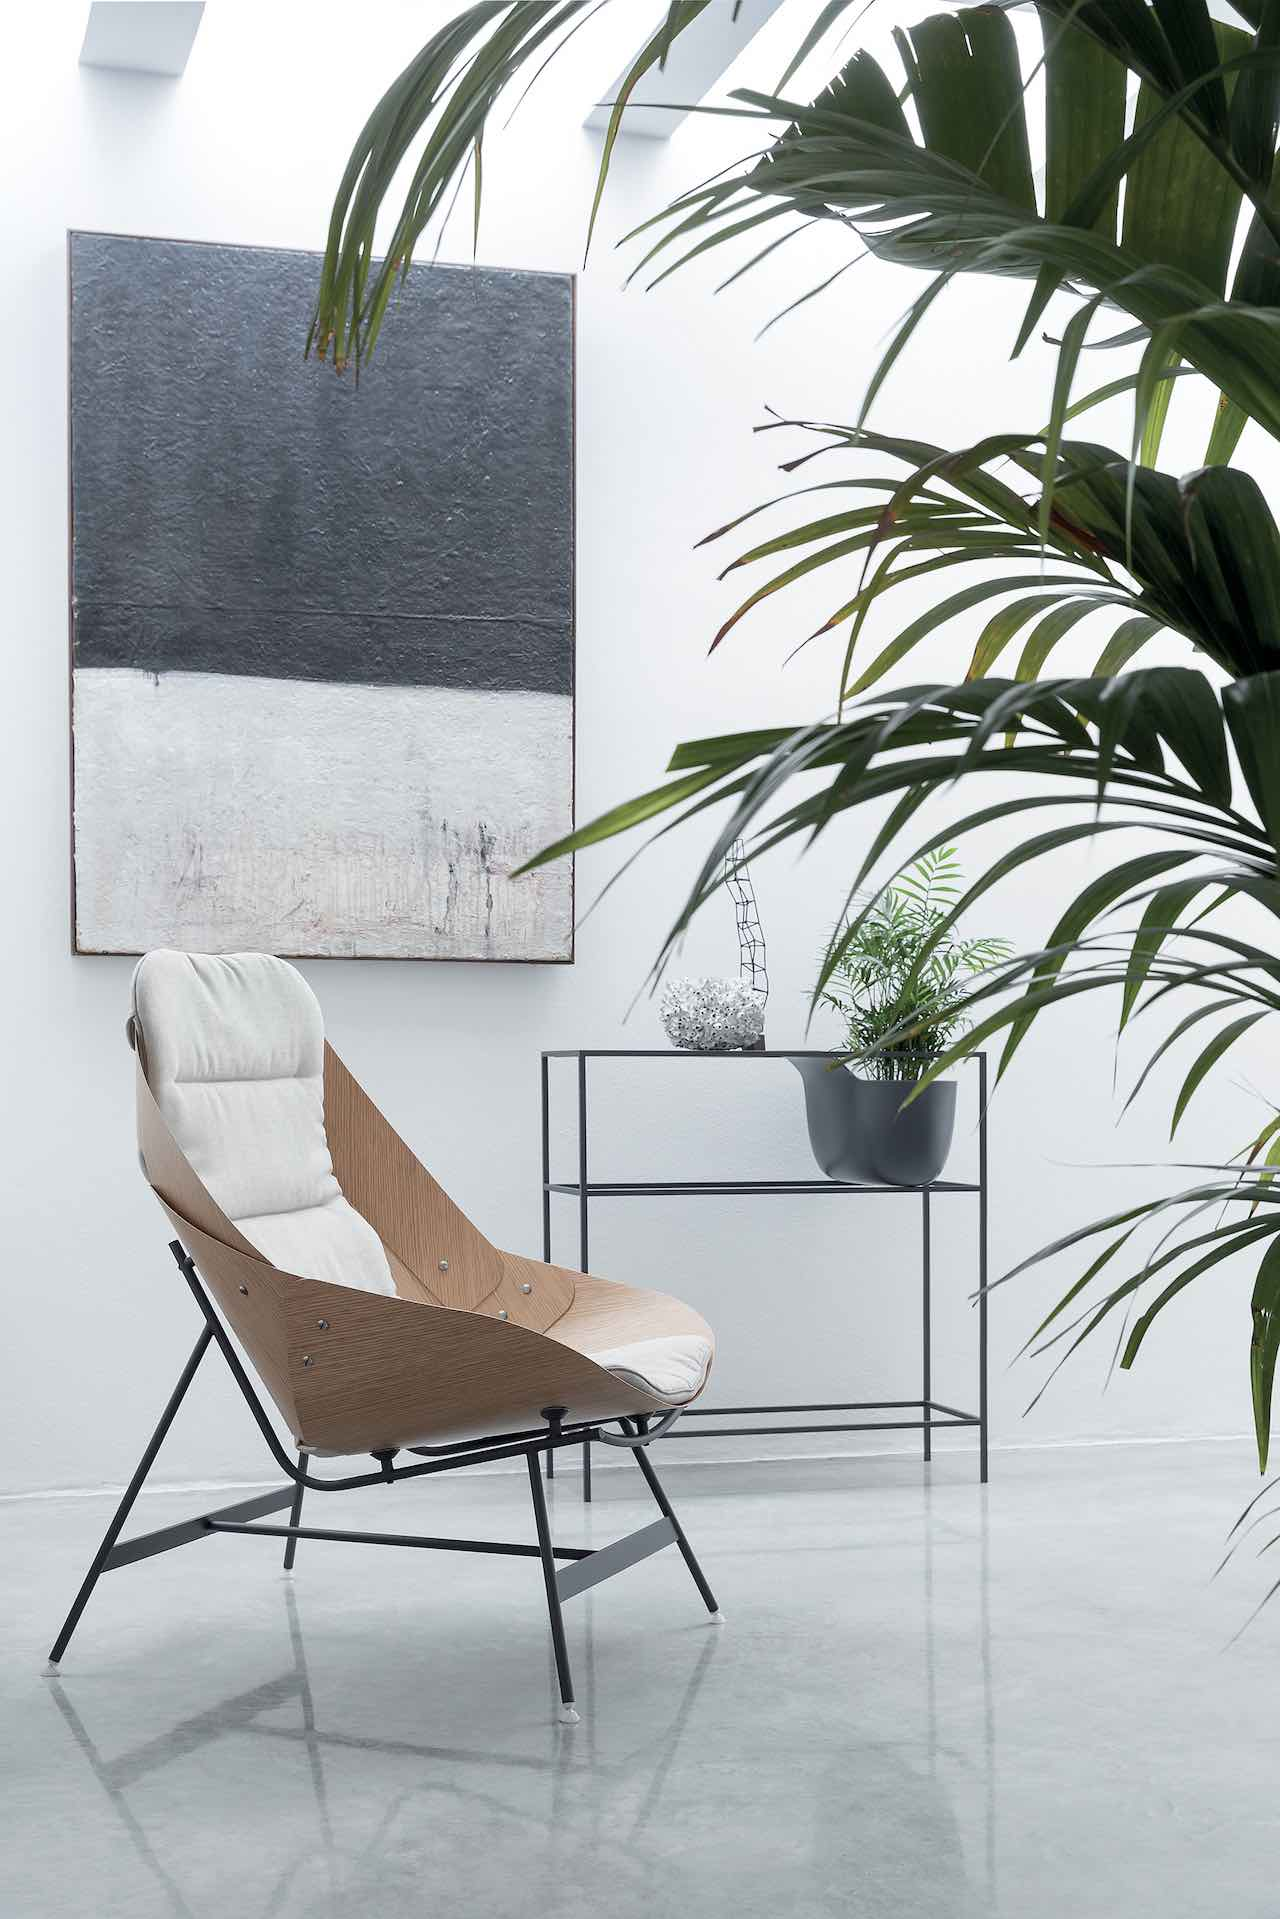 Time armchair, design Alfredo Häberli 2019, Alias. Photo Beppe Brancato, Courtesy Alias.